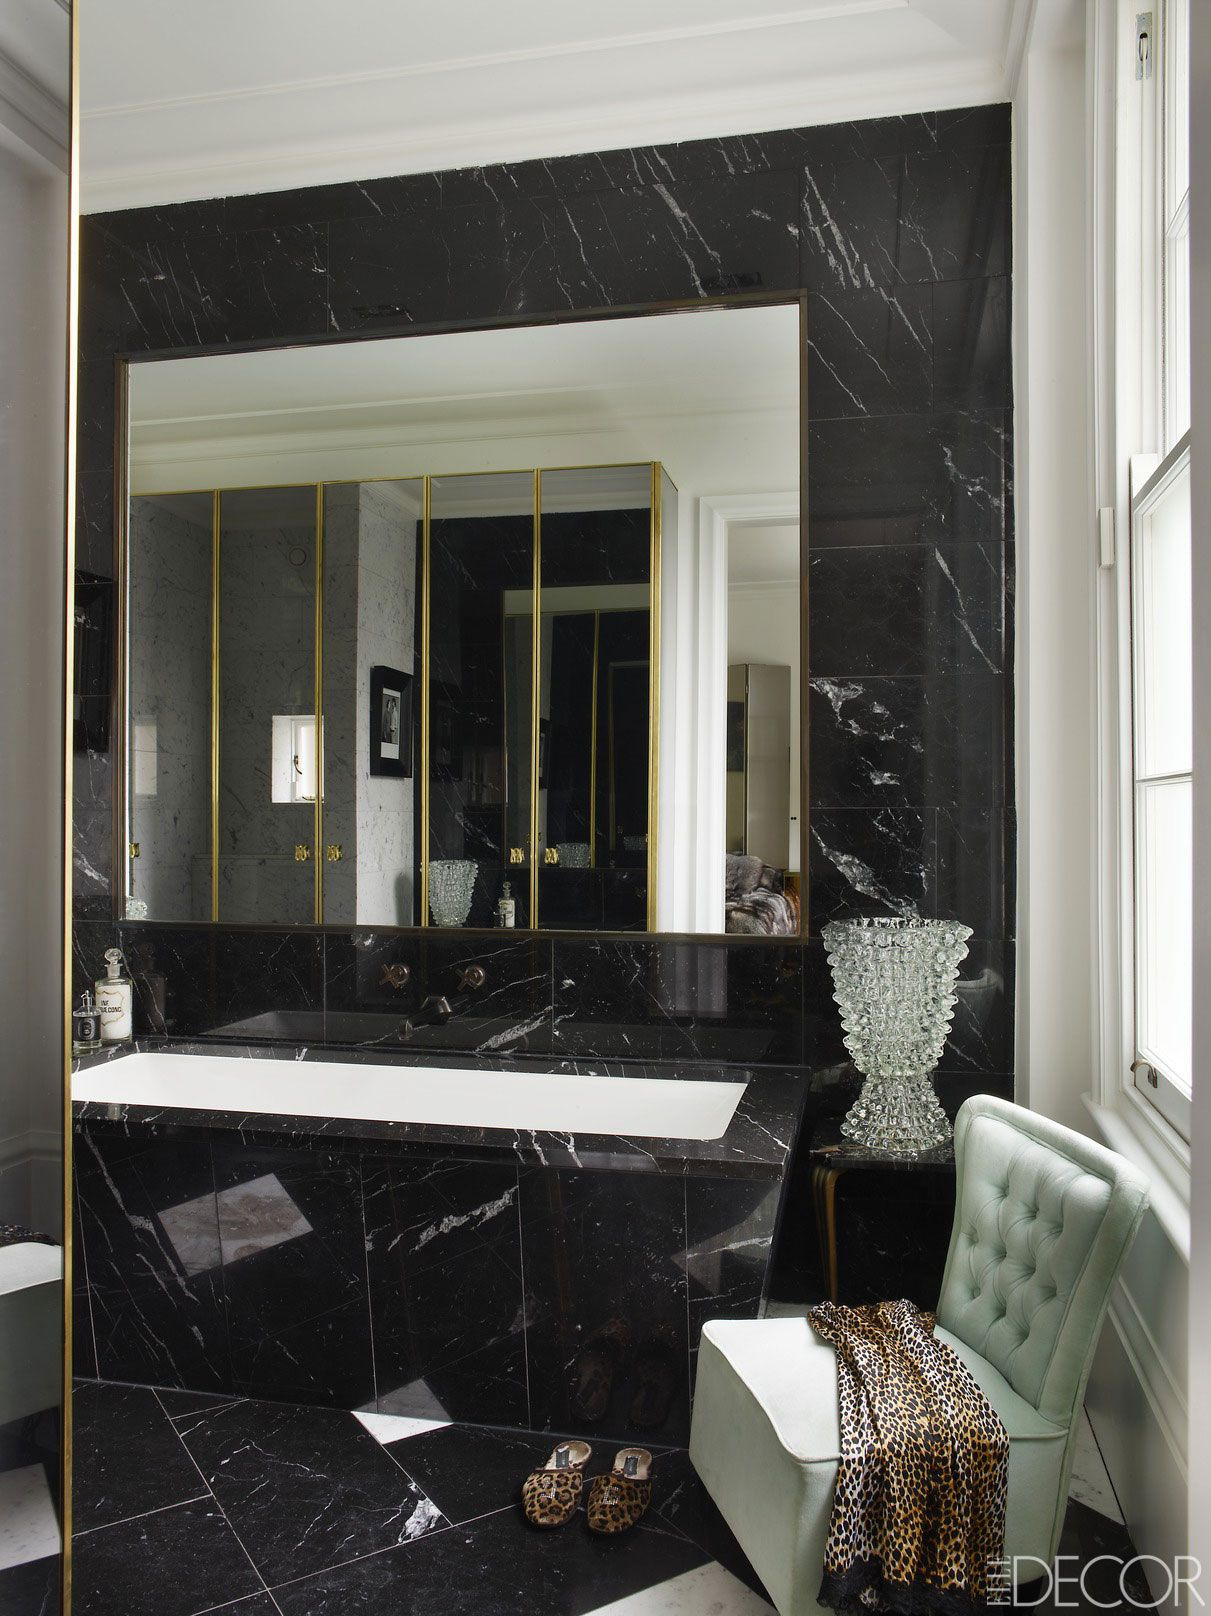 Bathroom decorating ideas black and white - Bathroom Decorating Ideas Black And White 8